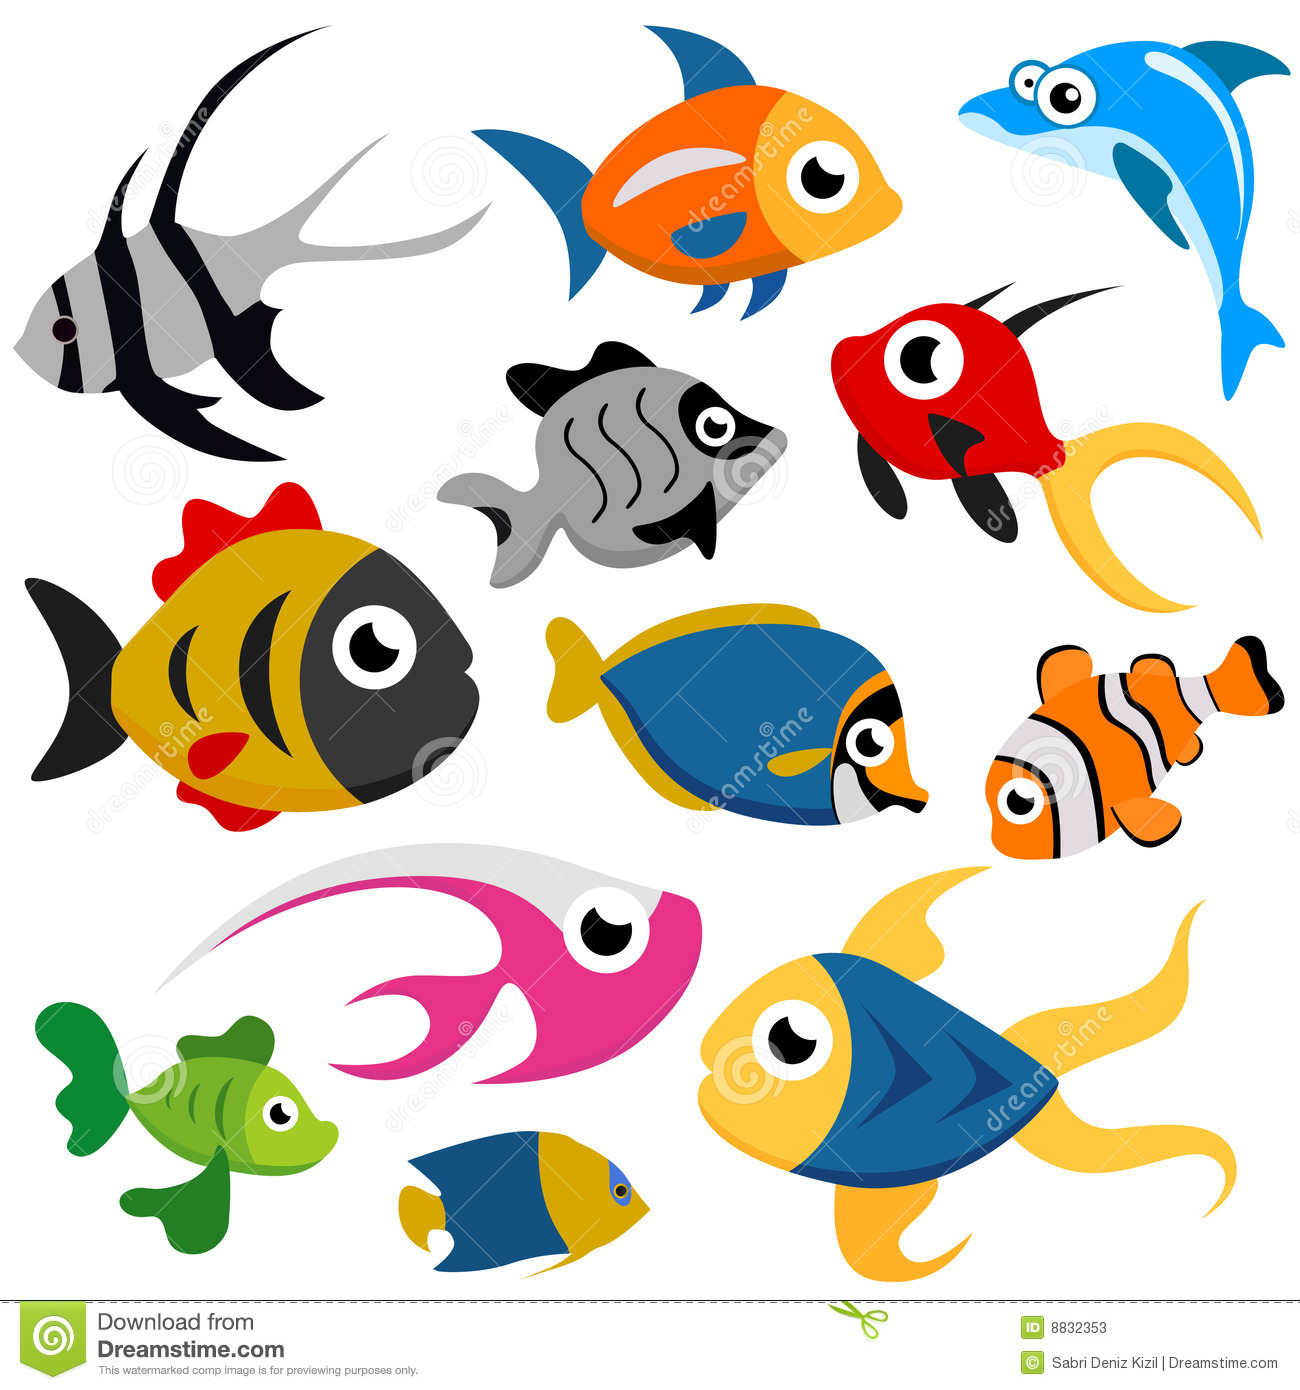 11 Vector Cartoon Fish Images